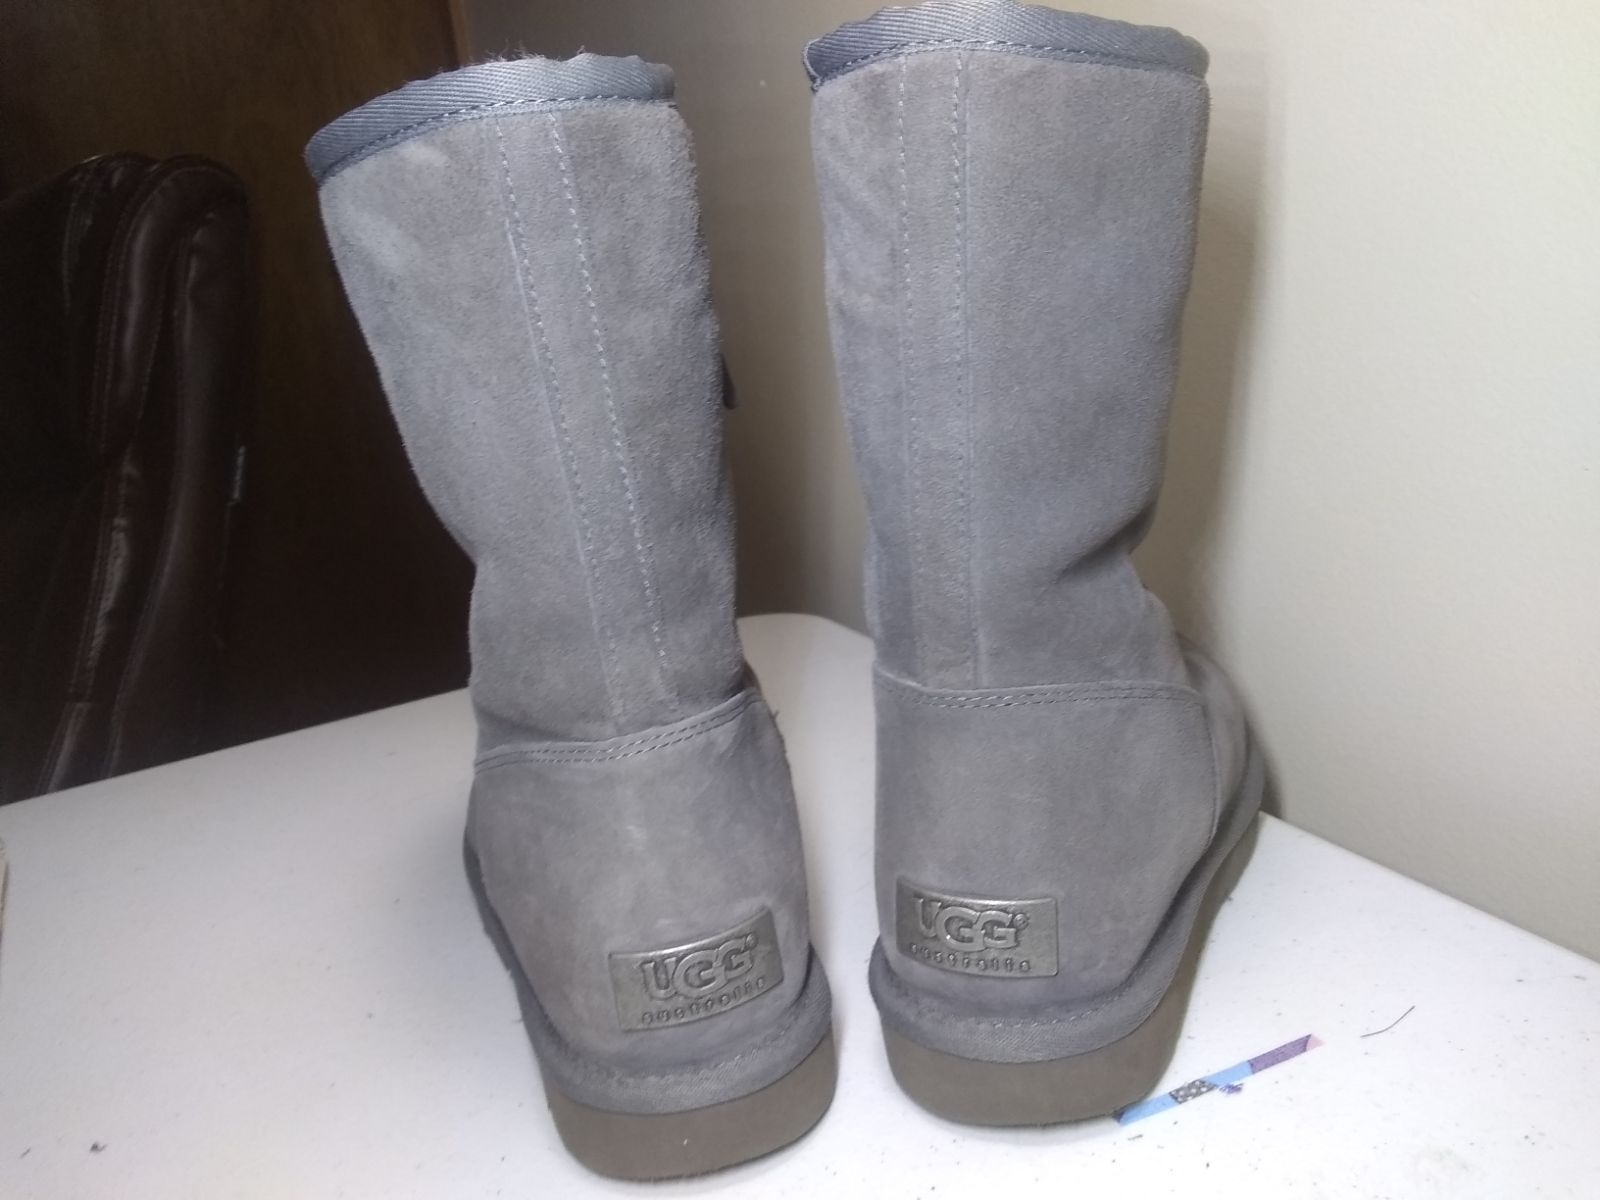 53b5003cae97a43ffb5297c3b99e3edf - How To Get The Feet Smell Out Of Uggs